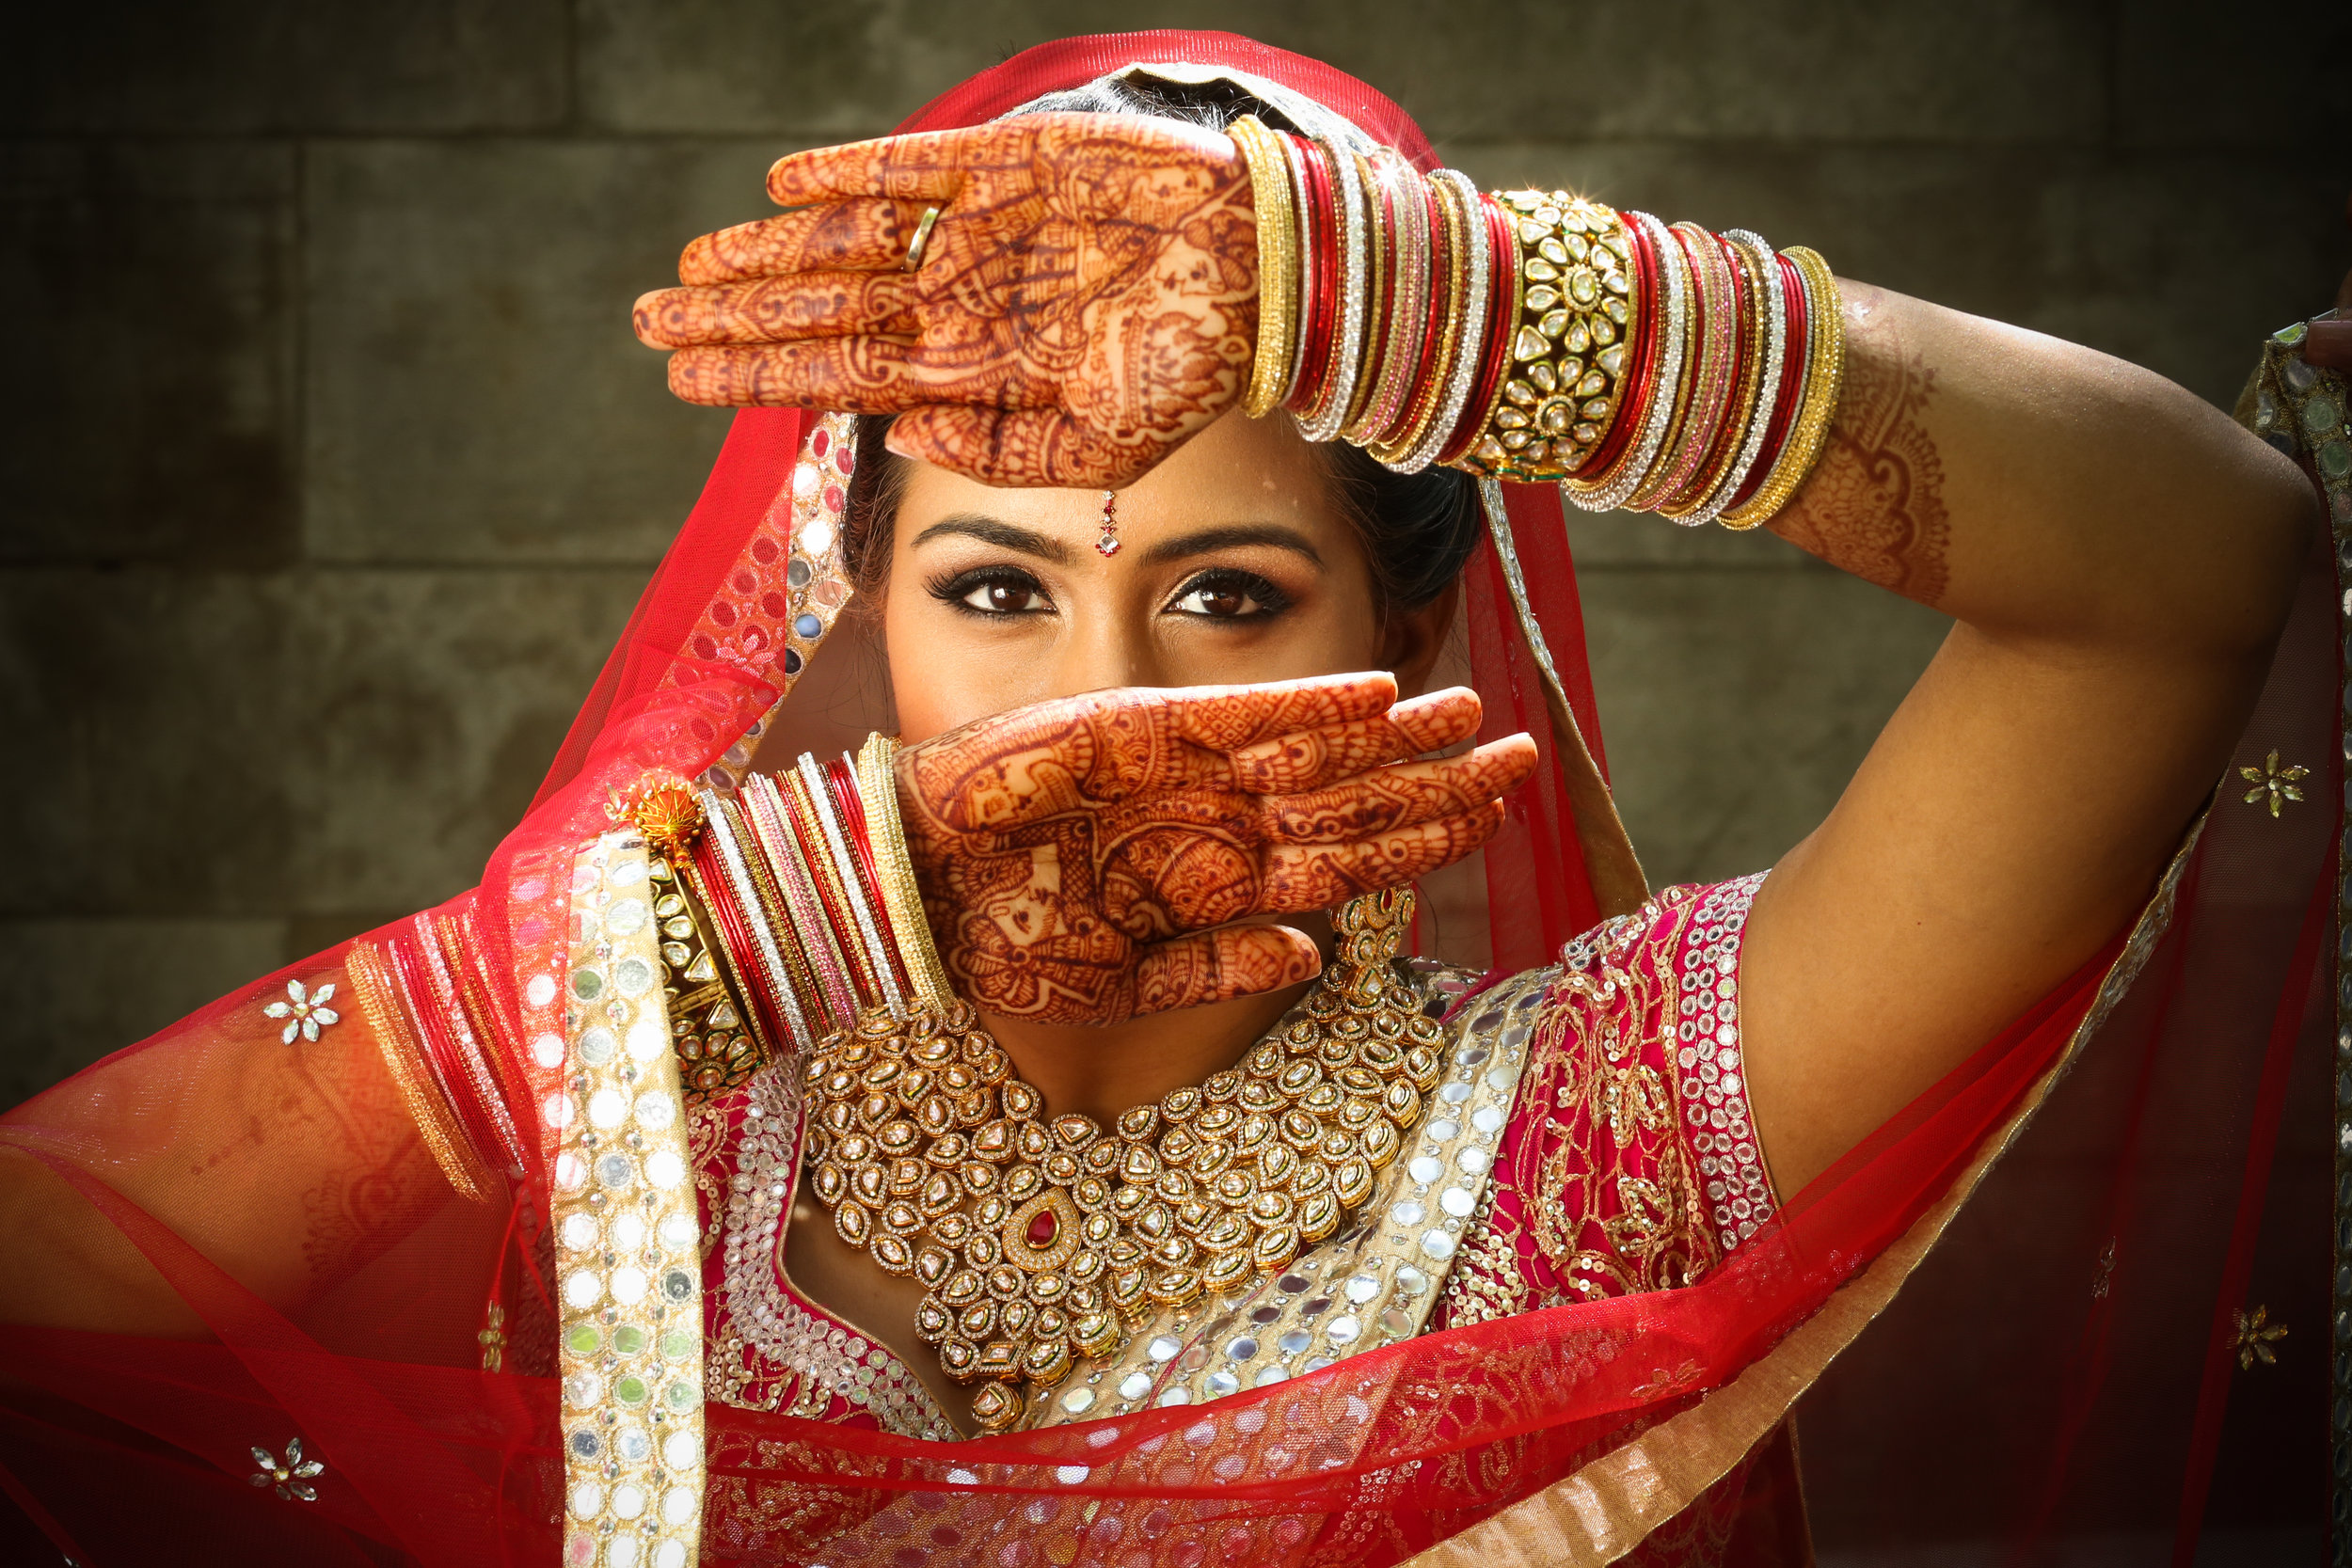 Indian Bride with bangles and henna